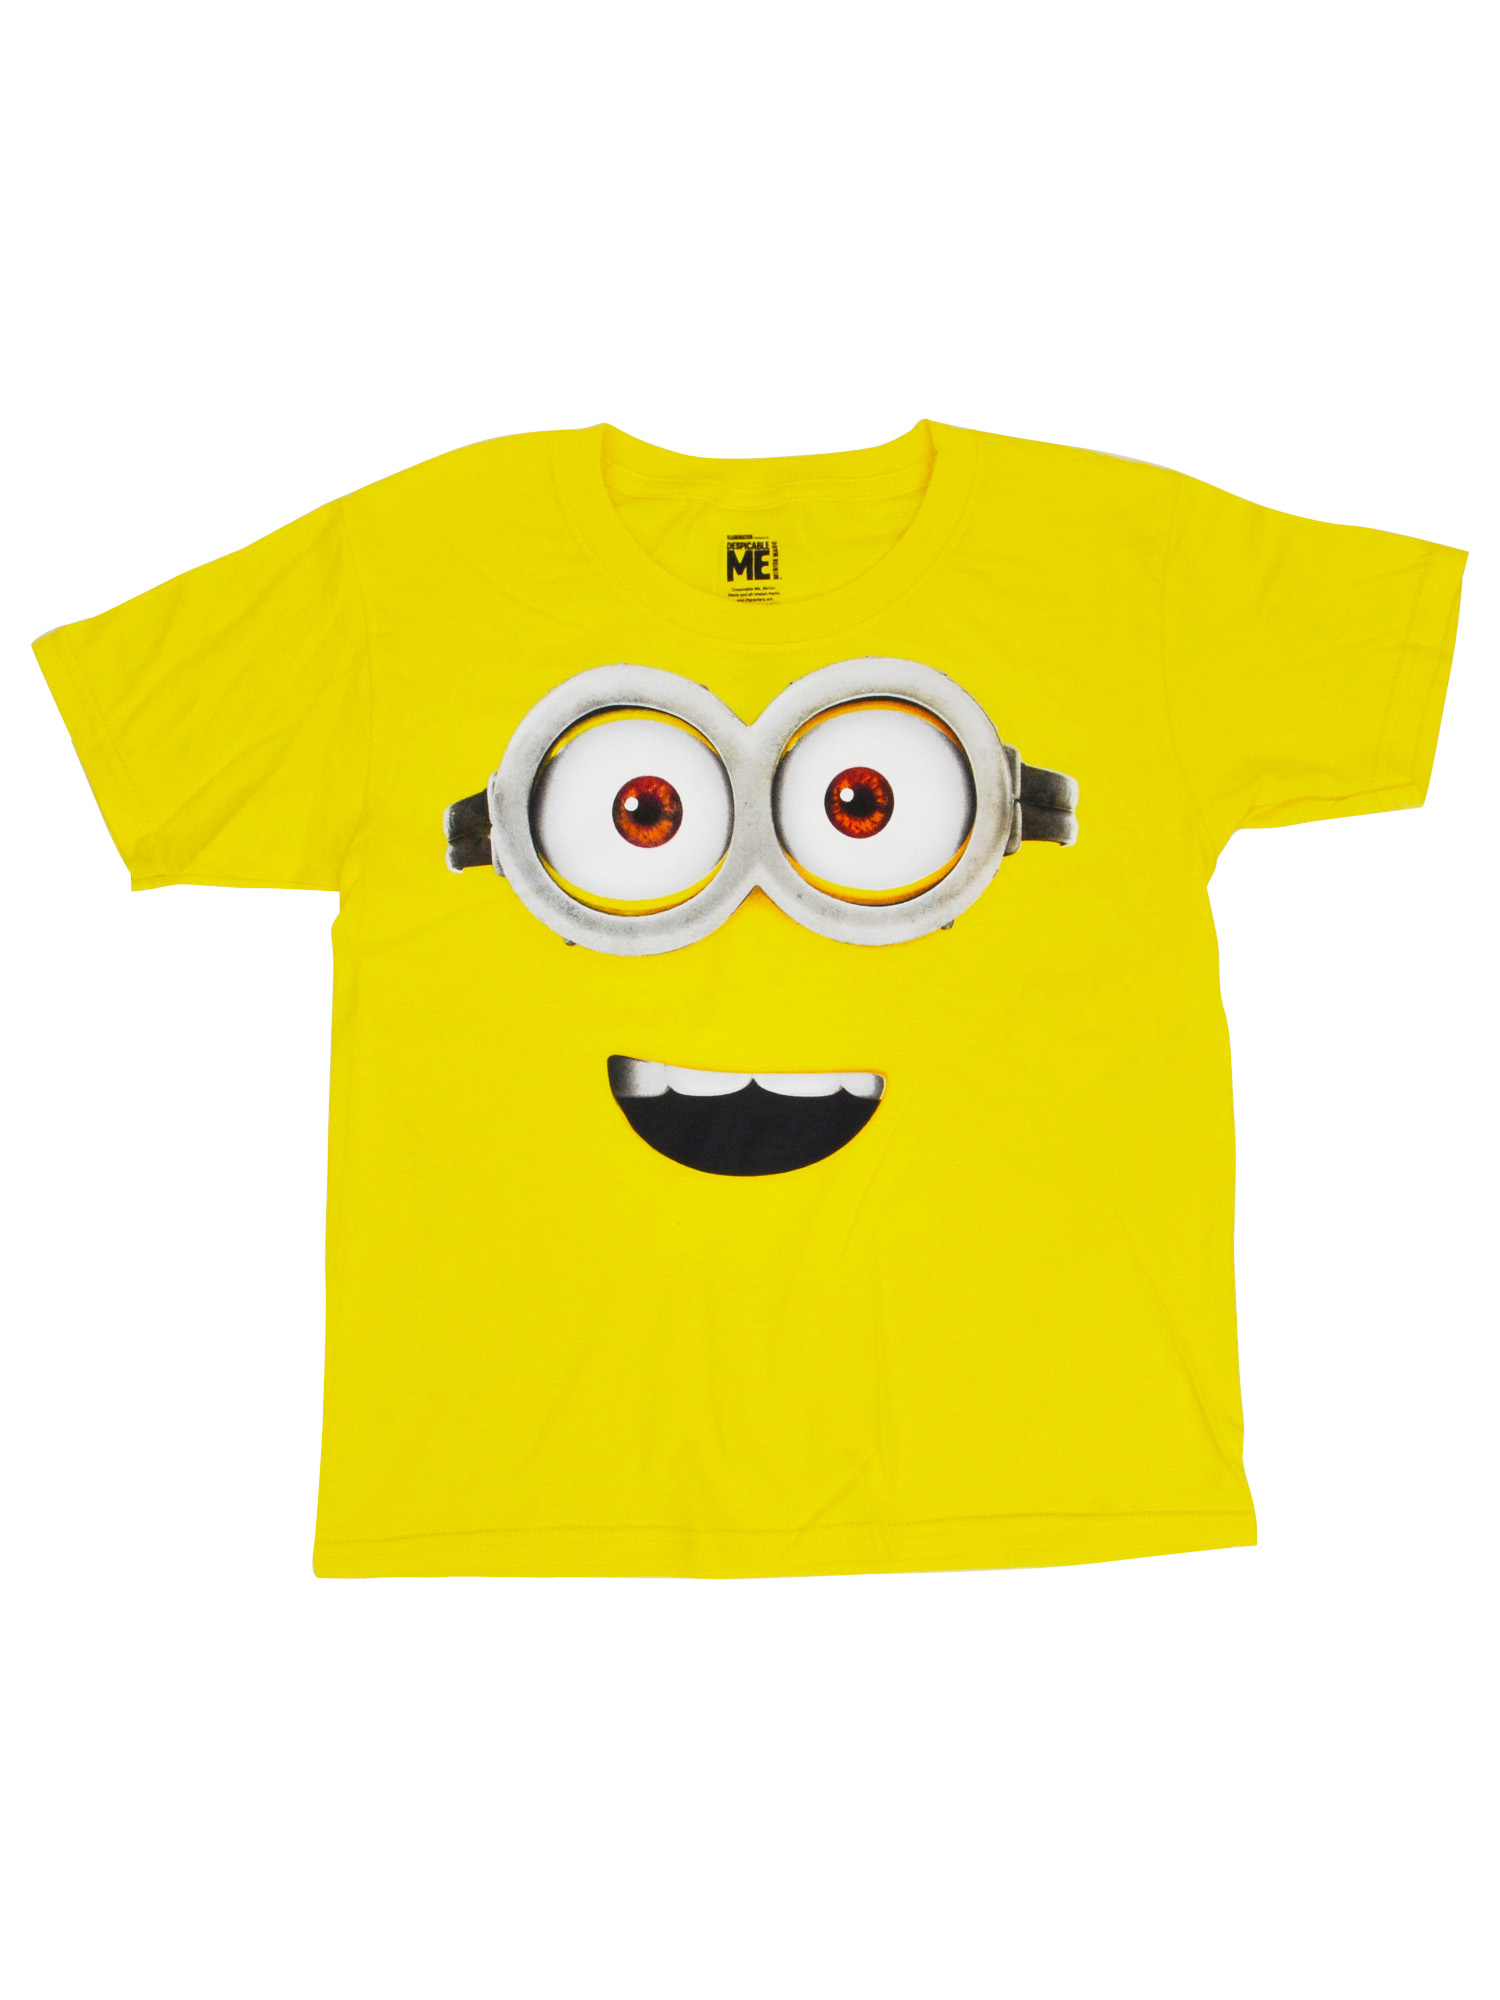 Despicable Me Minion t-shirt Size 6-7 S 14-16 XL New childs Short Sleeve Tee